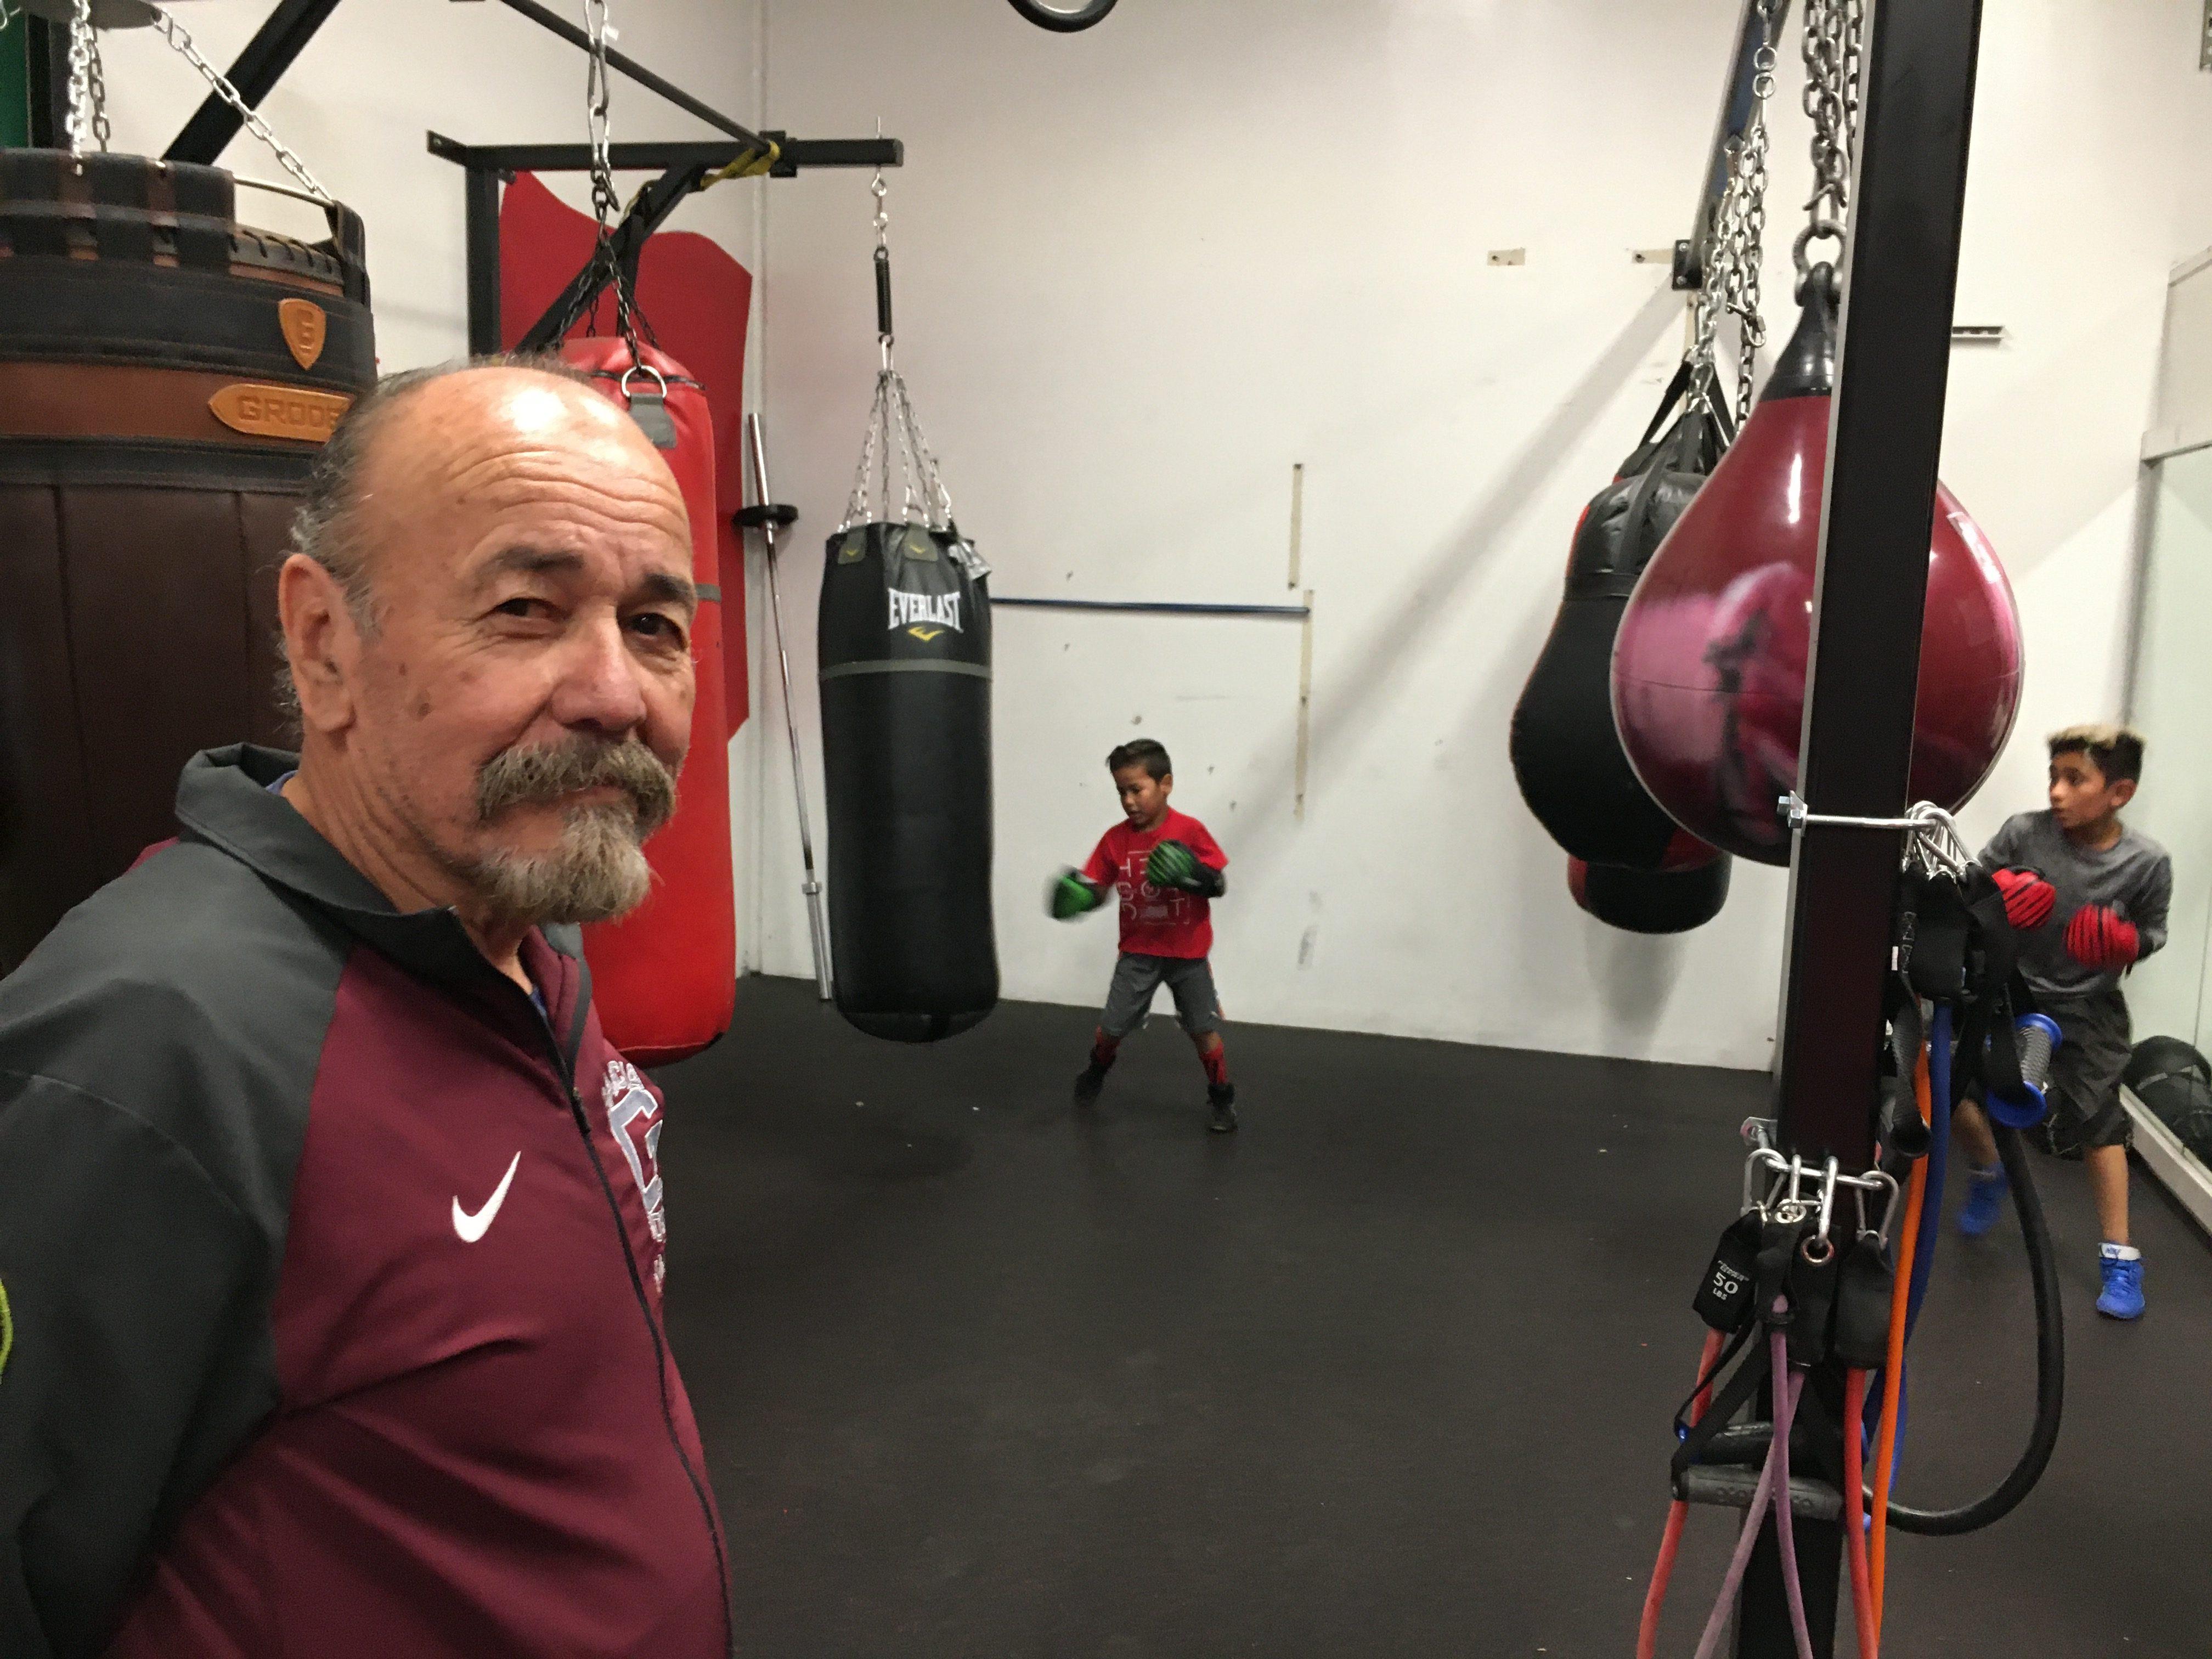 Max-Garcia-head-trainer-for-unbeaten-Ruben-Villa-has-guided-two-previous-pro-fighters-to-No.-1-world-rankings.-DENNIS-TAYLOR-PHOTO-1-e1574882959997